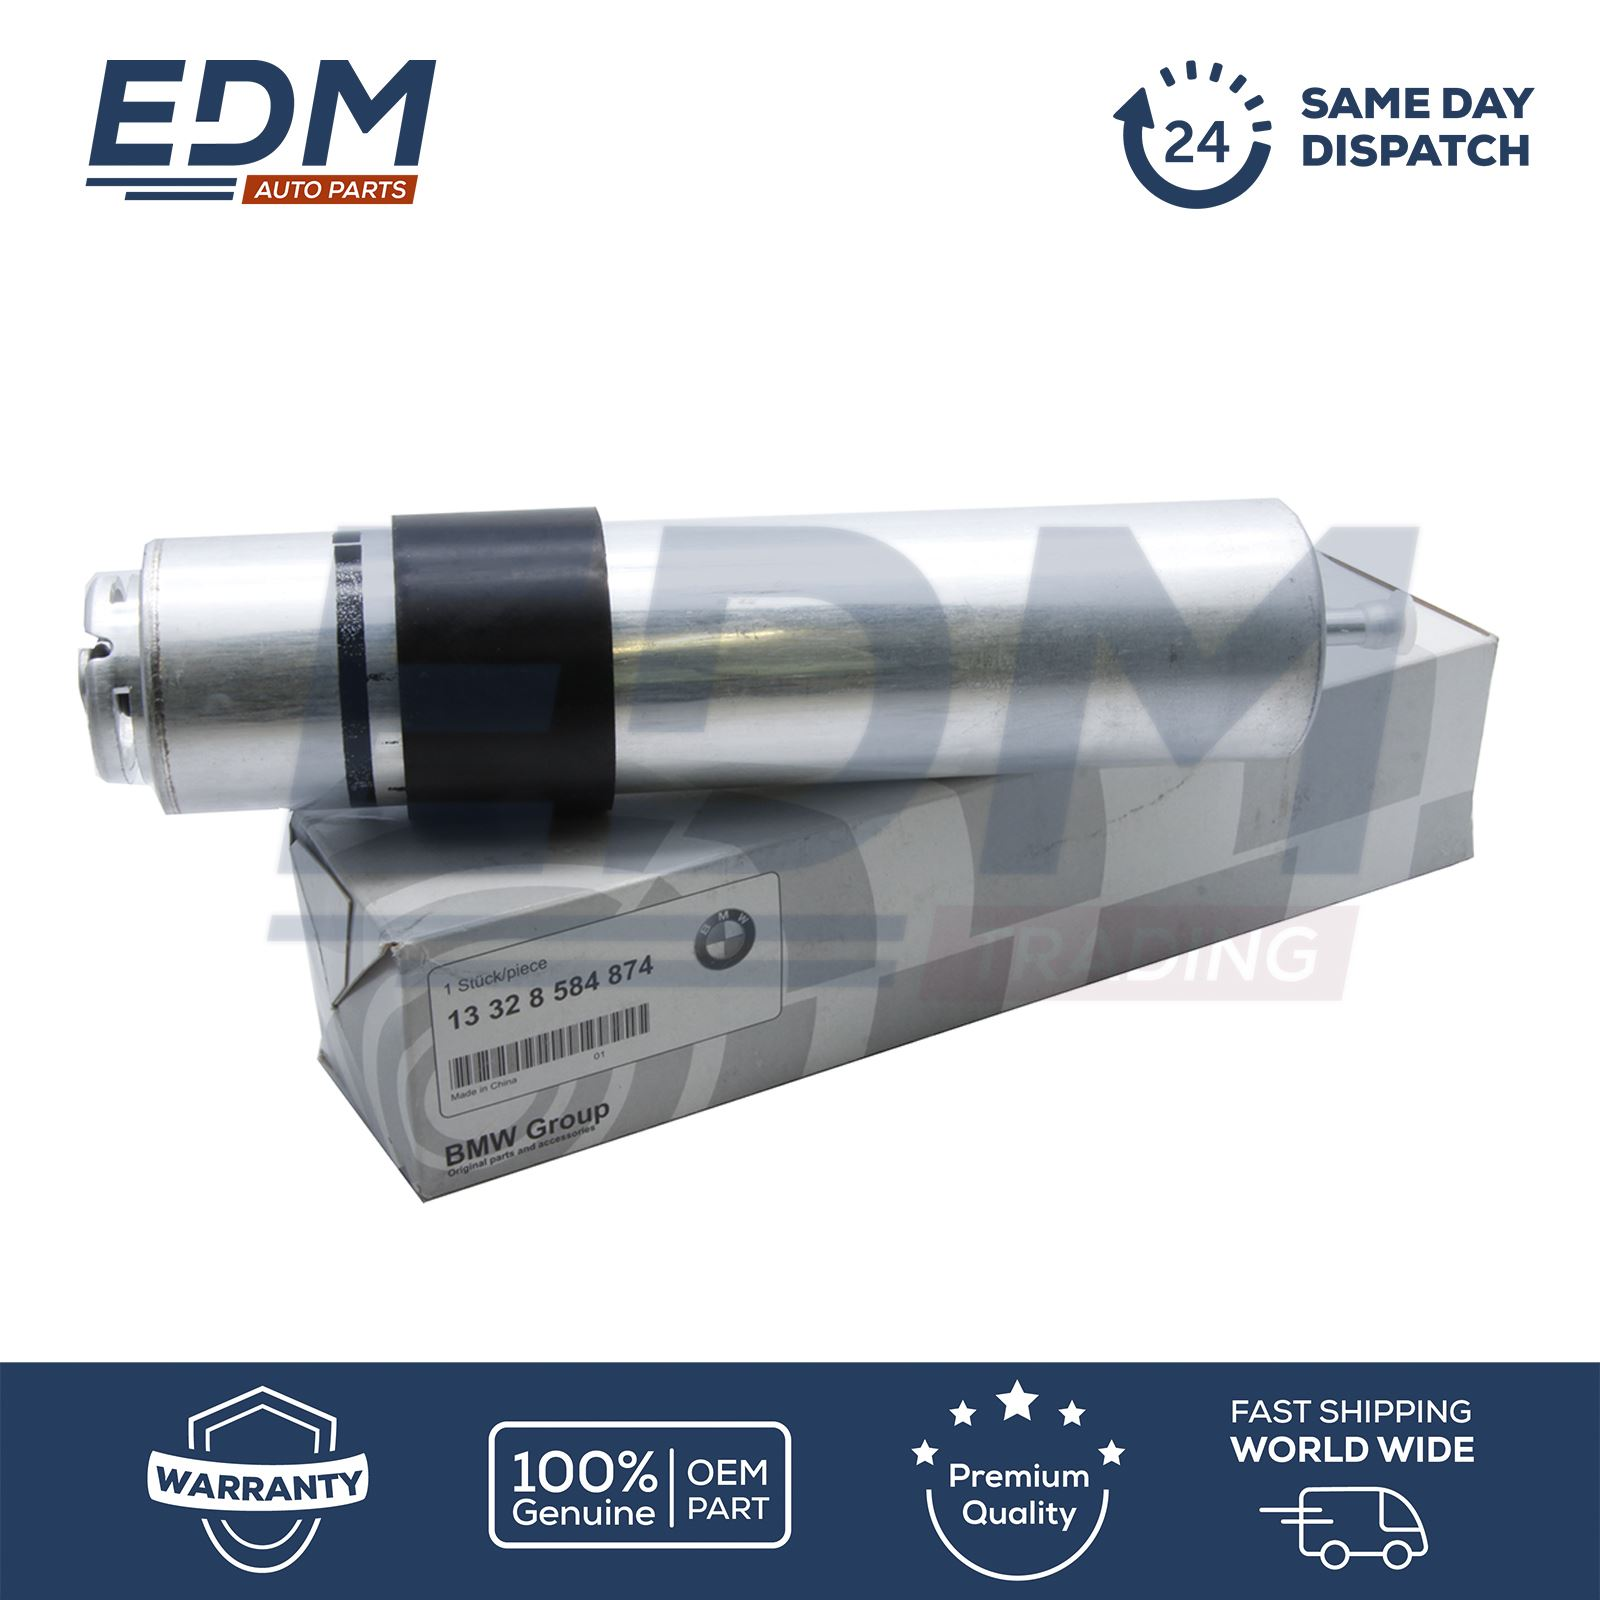 hight resolution of details about oem bmw fuel filter for x1 e84 x3 f25 x4 f26 xdrive 18 20 25 30 35d 13328584874